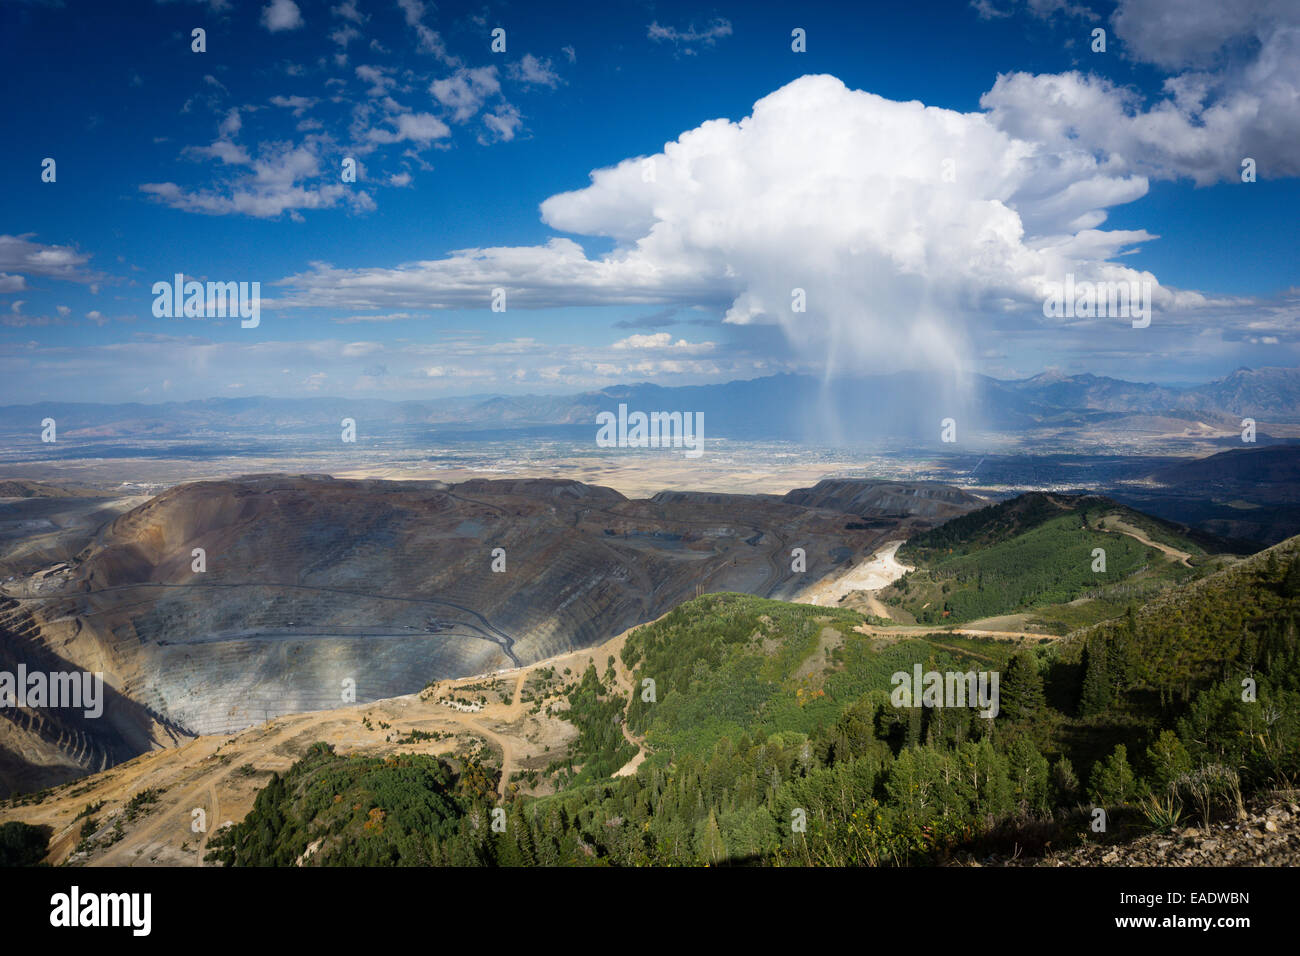 The Bingham Canyon Copper mine outside of Salt Lake City, Utah, with a squall in the distance. - Stock Image